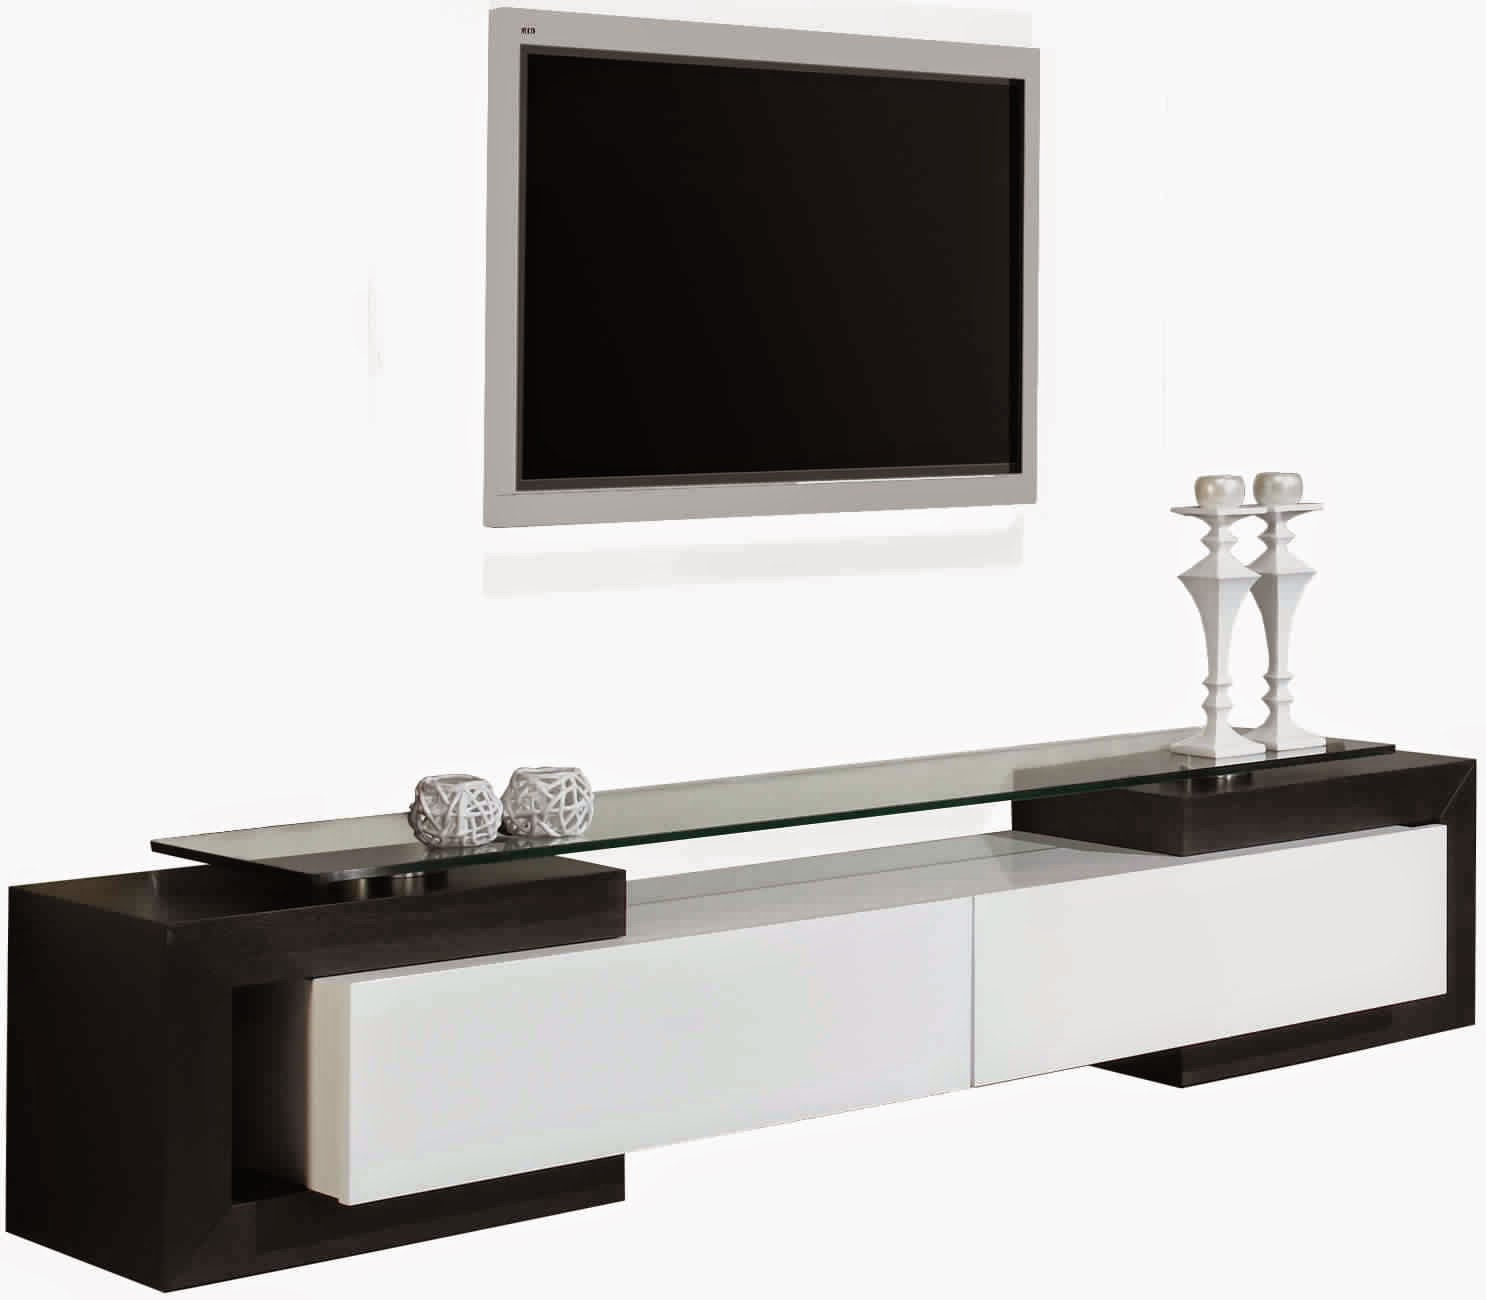 meuble tv noir et blanc laqu conforama kx87 jornalagora. Black Bedroom Furniture Sets. Home Design Ideas